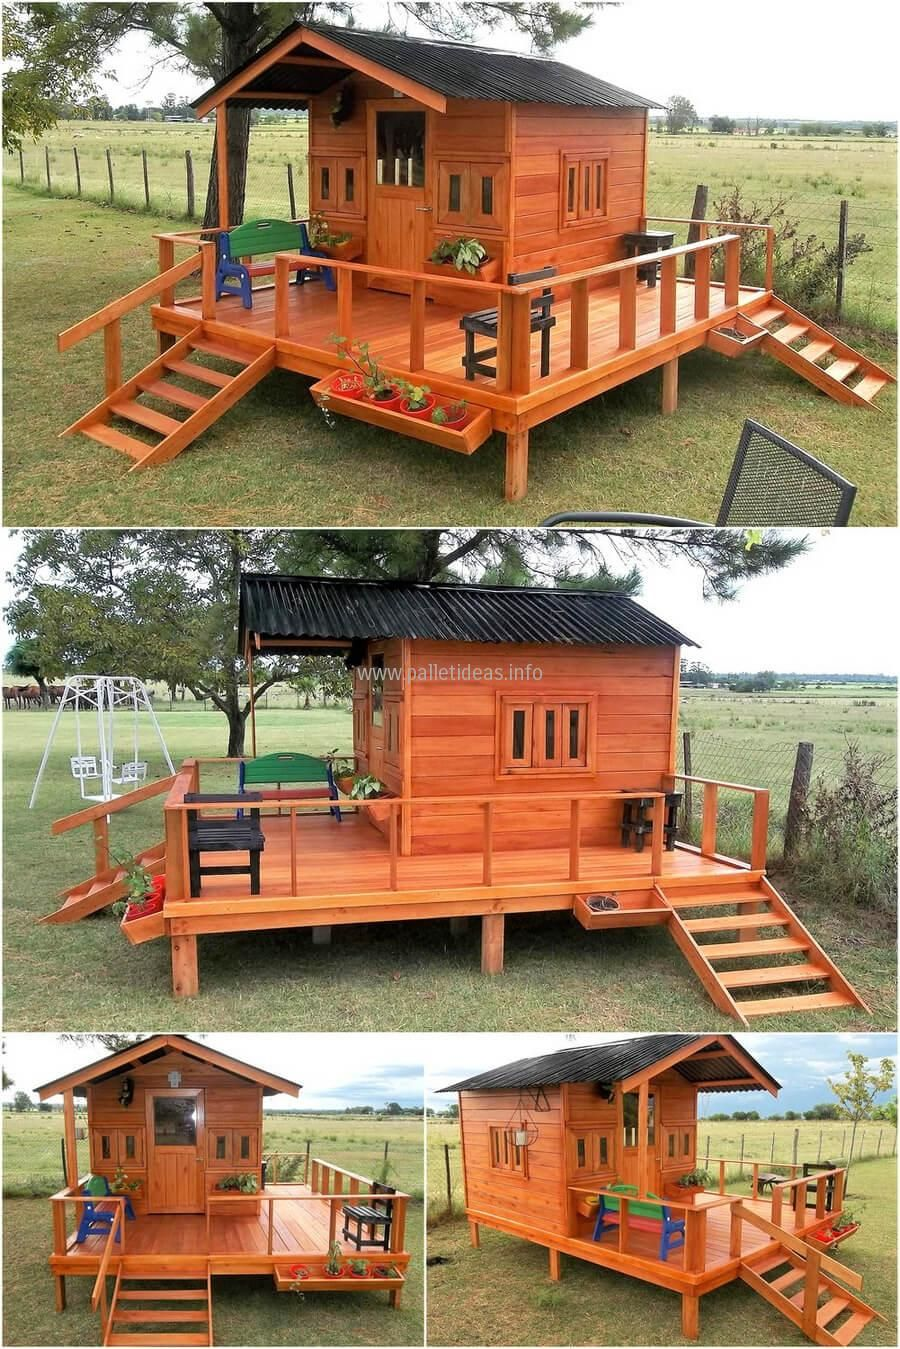 Tremendous Reclaimed Wood Pallets Patio Cabin Deck Wood Pallets In Best Image Libraries Barepthycampuscom